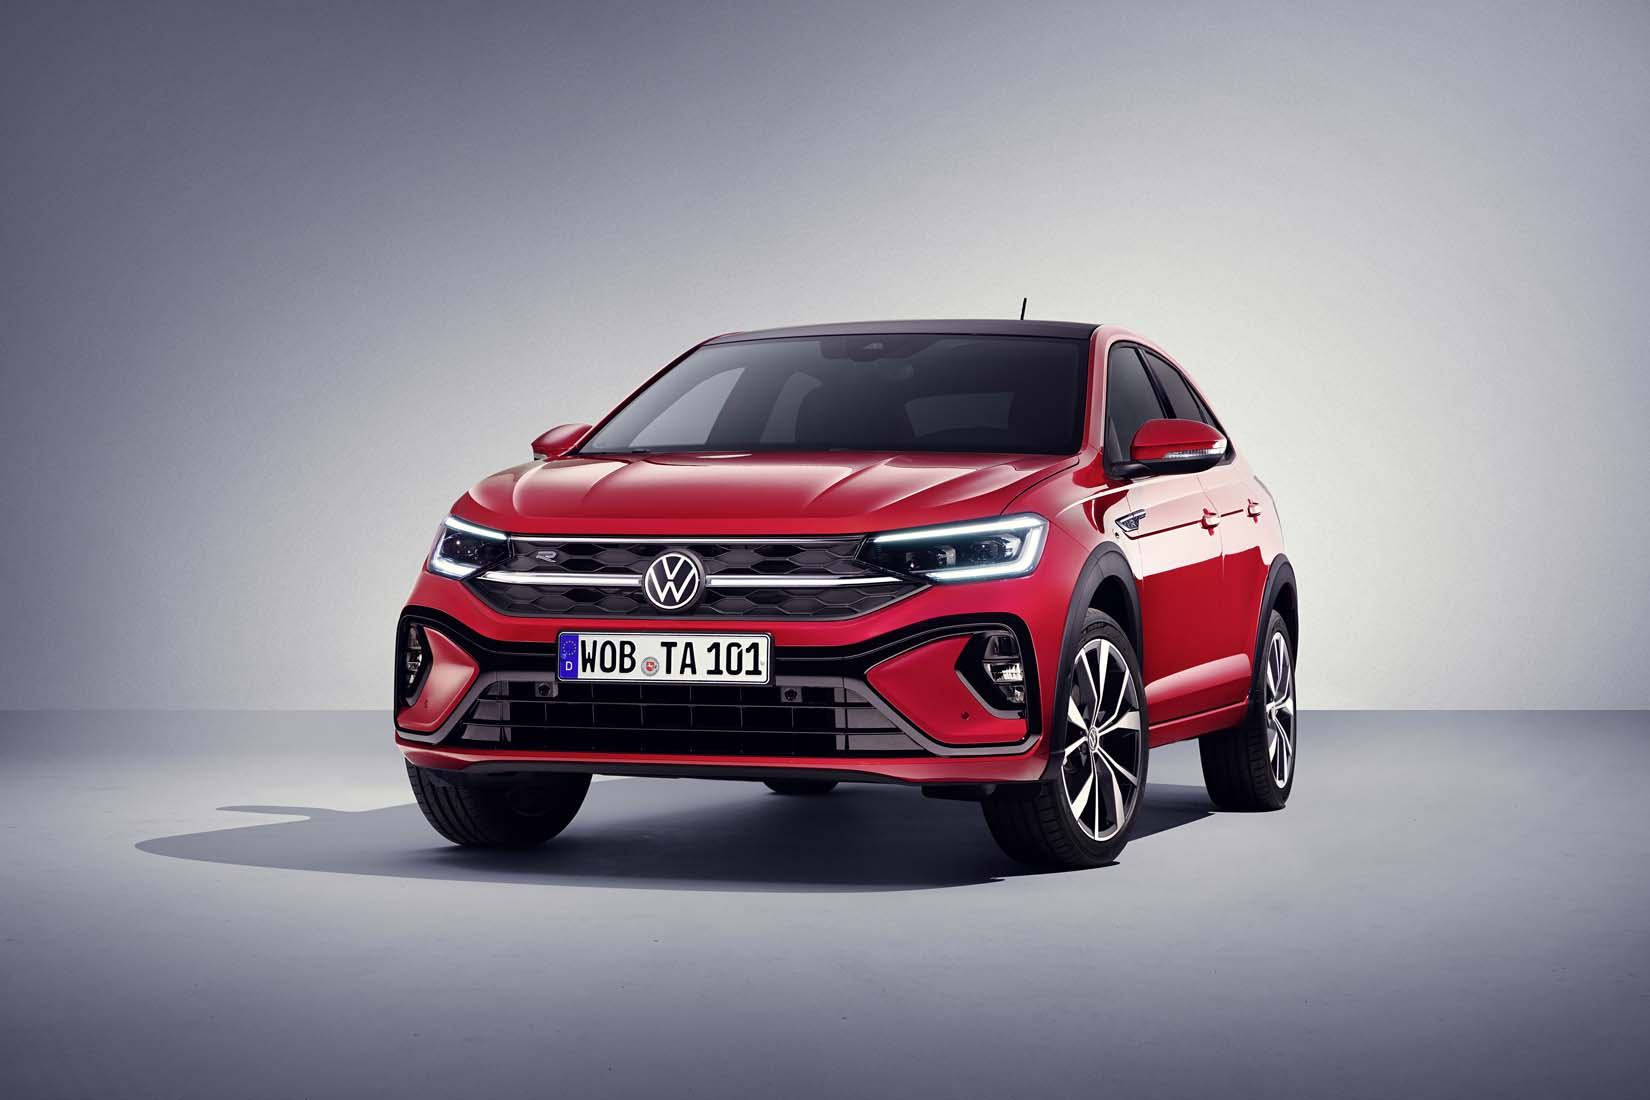 VW lifts the curtains on its latest crossover